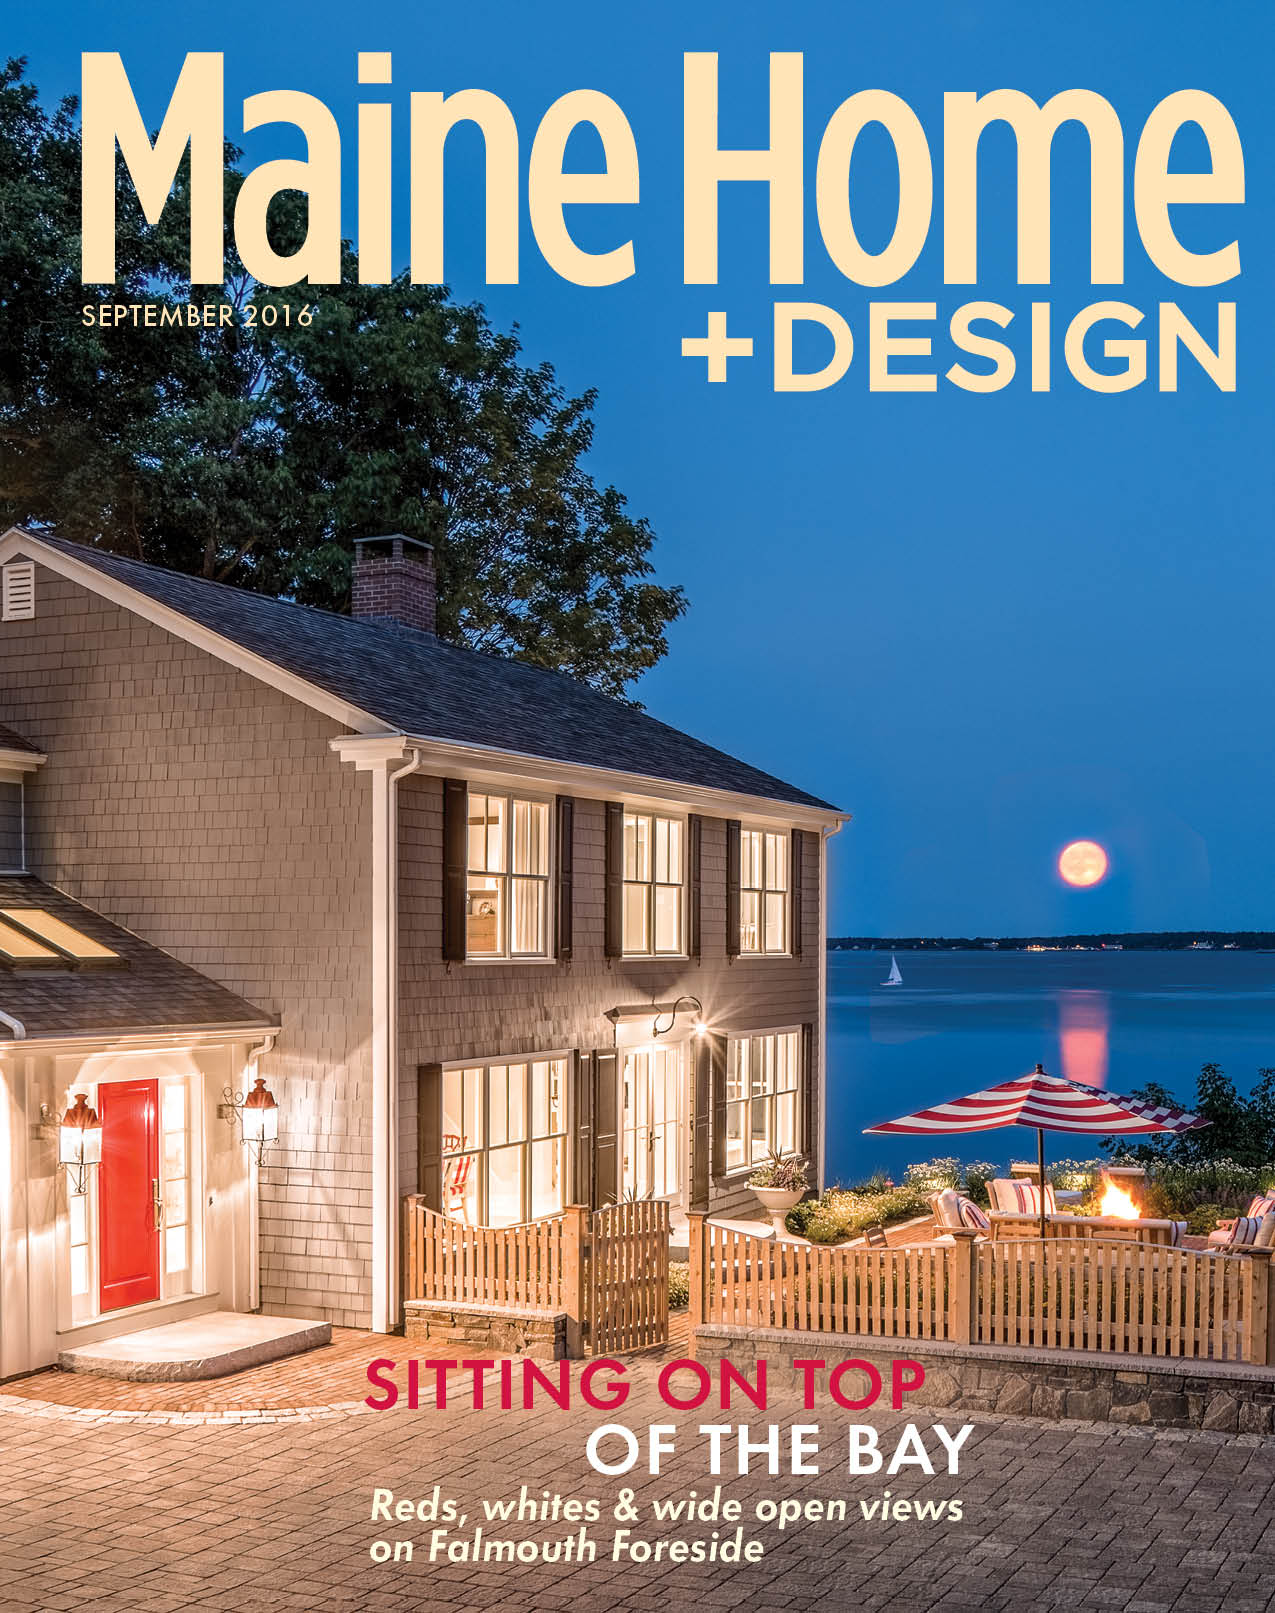 Endearing 40 maine home and design inspiration design of for Maine home and design